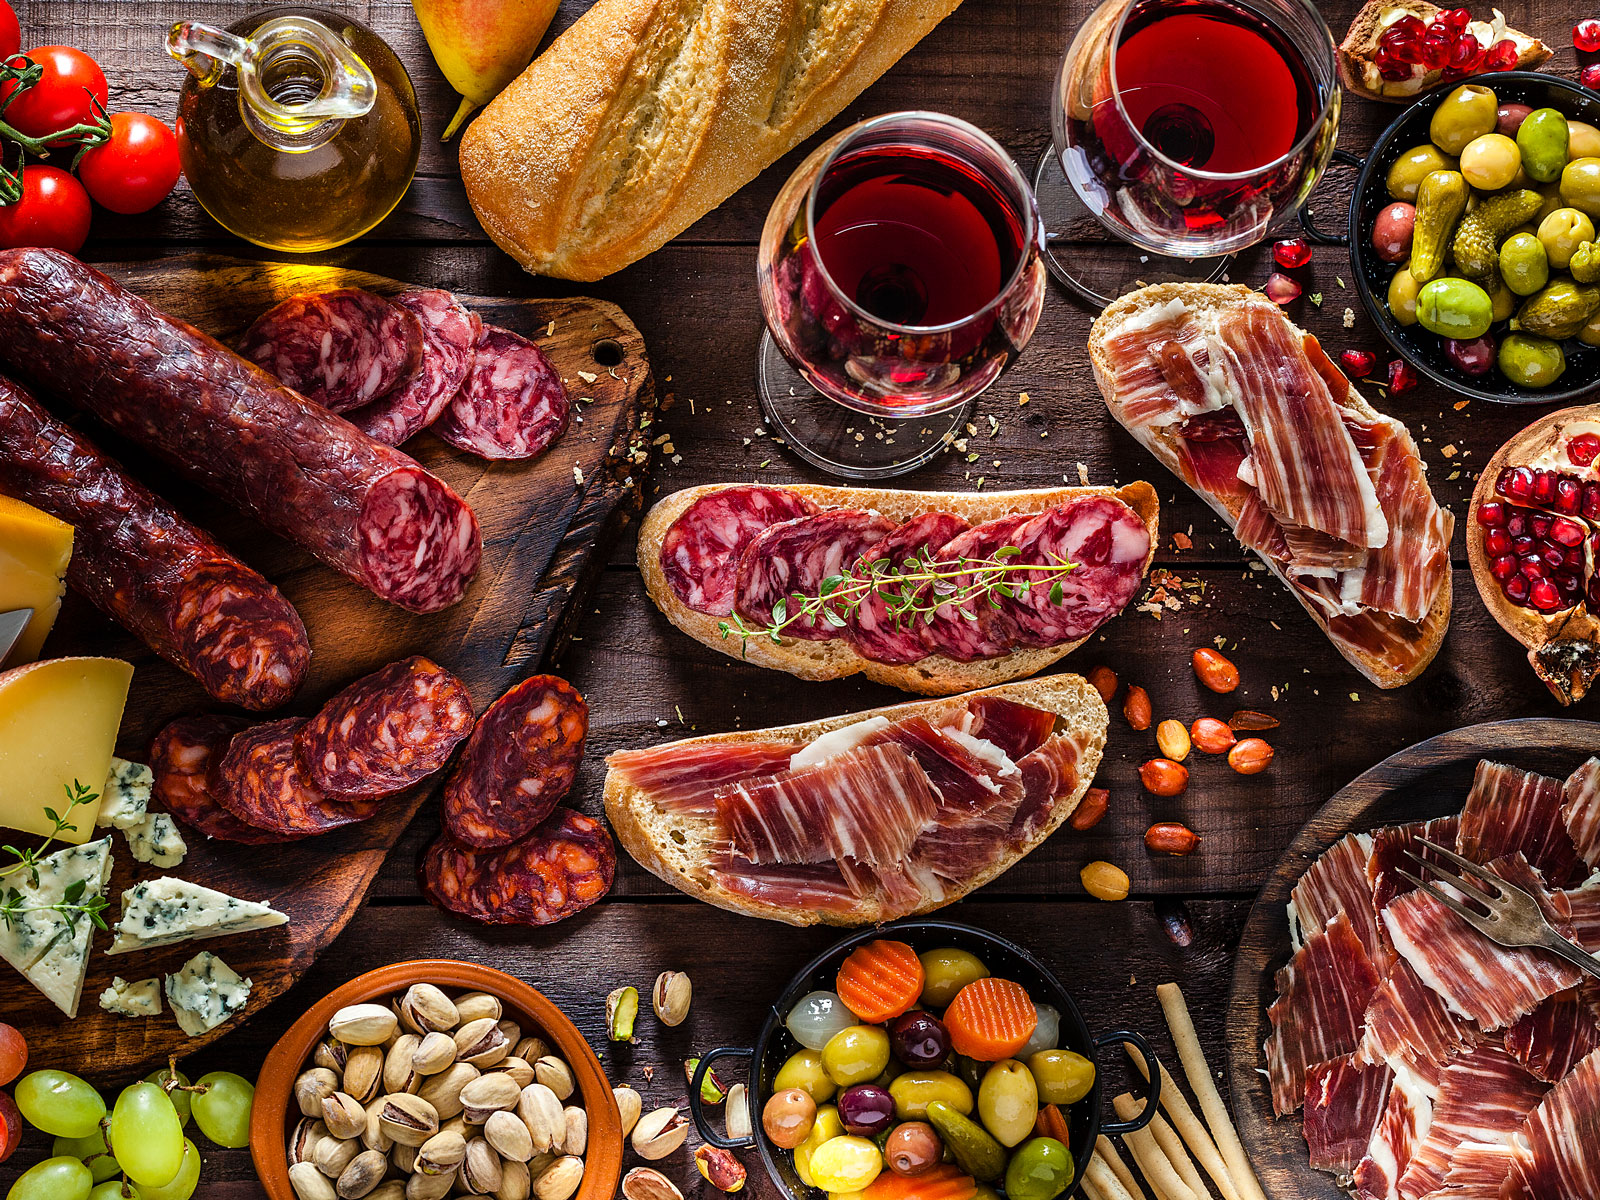 Explore Spanish Food and Wine With Google Arts & Culture's Expansive Digital Gallery